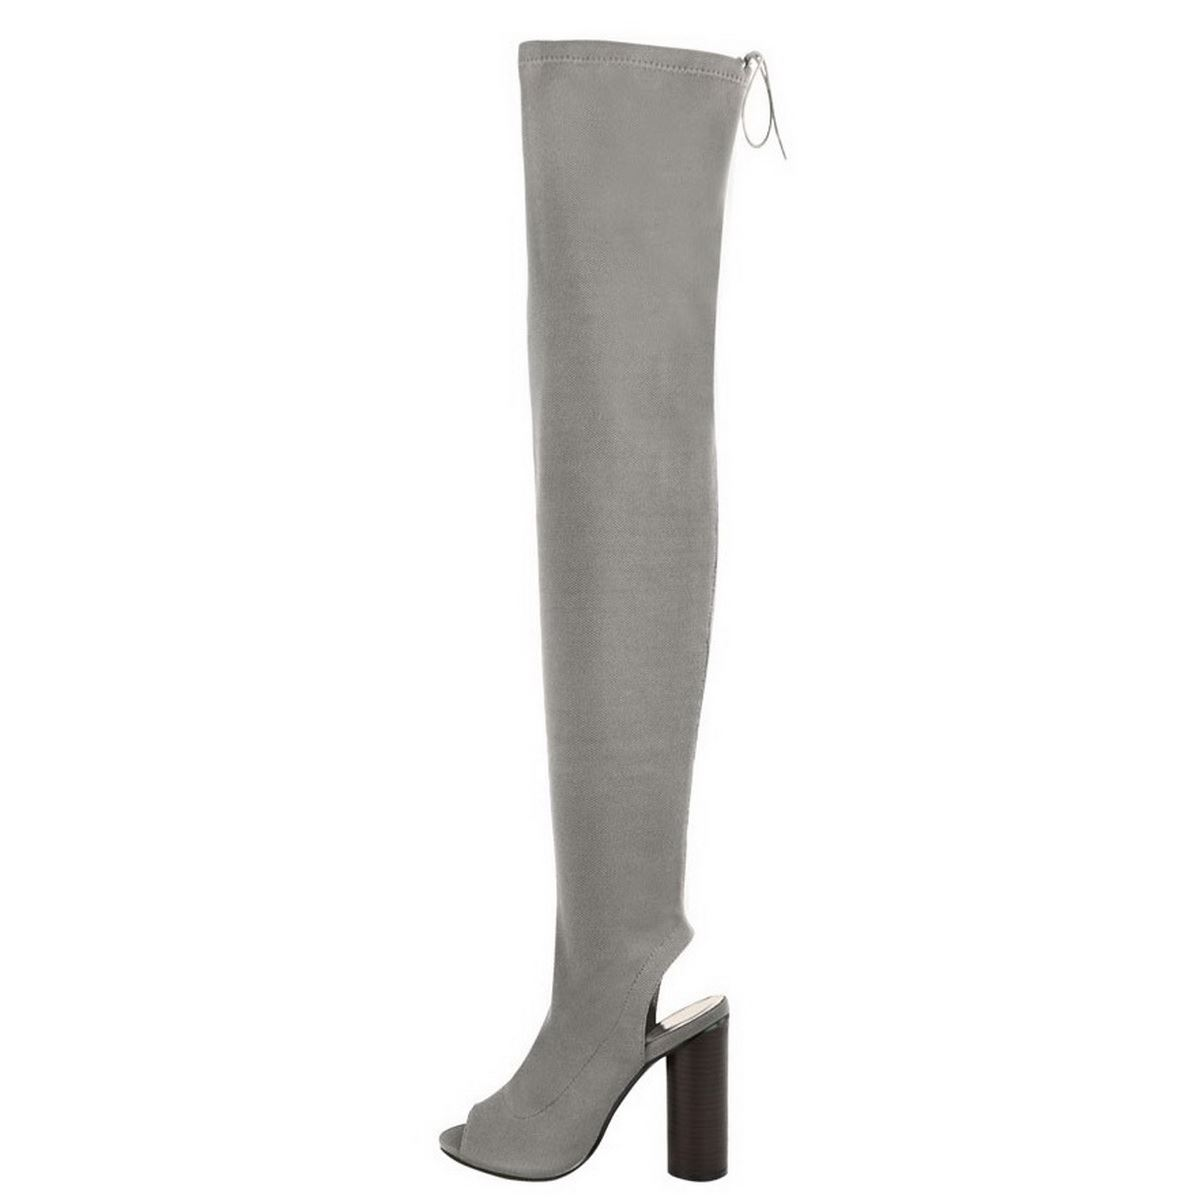 LADIES WOMENS THIGH HIGH OVER THE KNEE PEEP TOE STRETCH KNIT BOOTS BLOCK HEEL